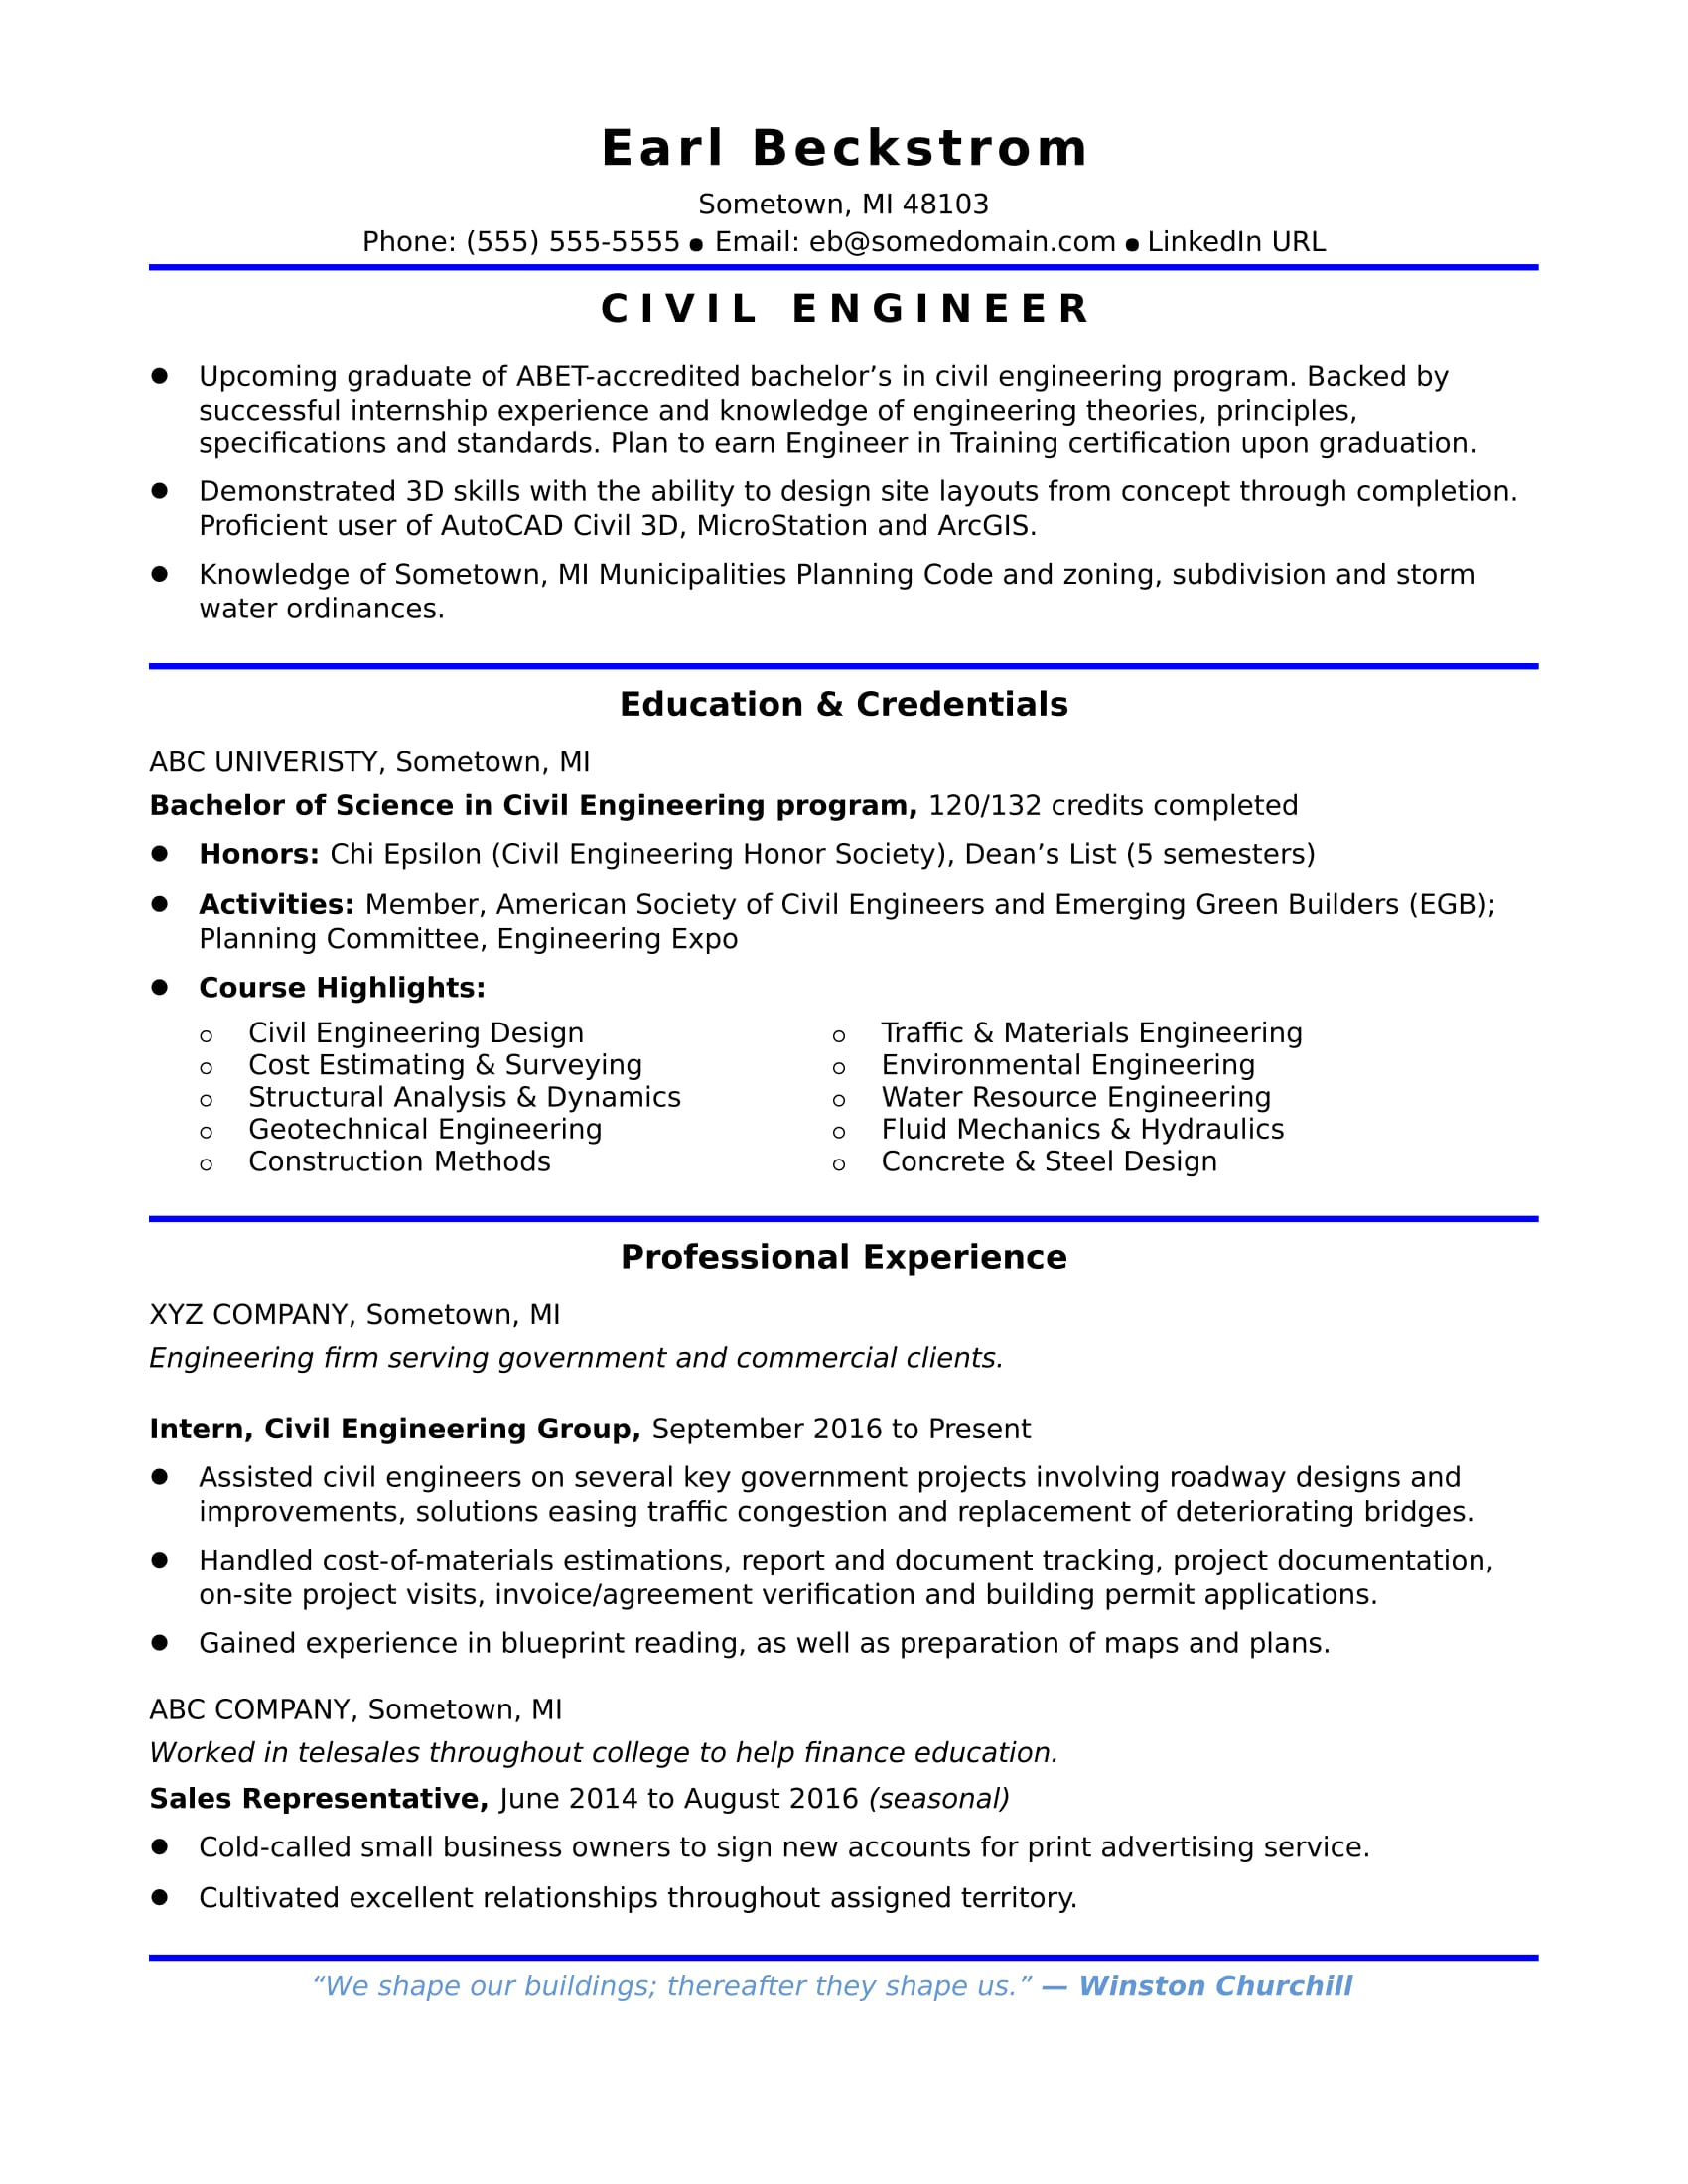 Sample Resume For An Entry Level Civil Engineer Monster Com